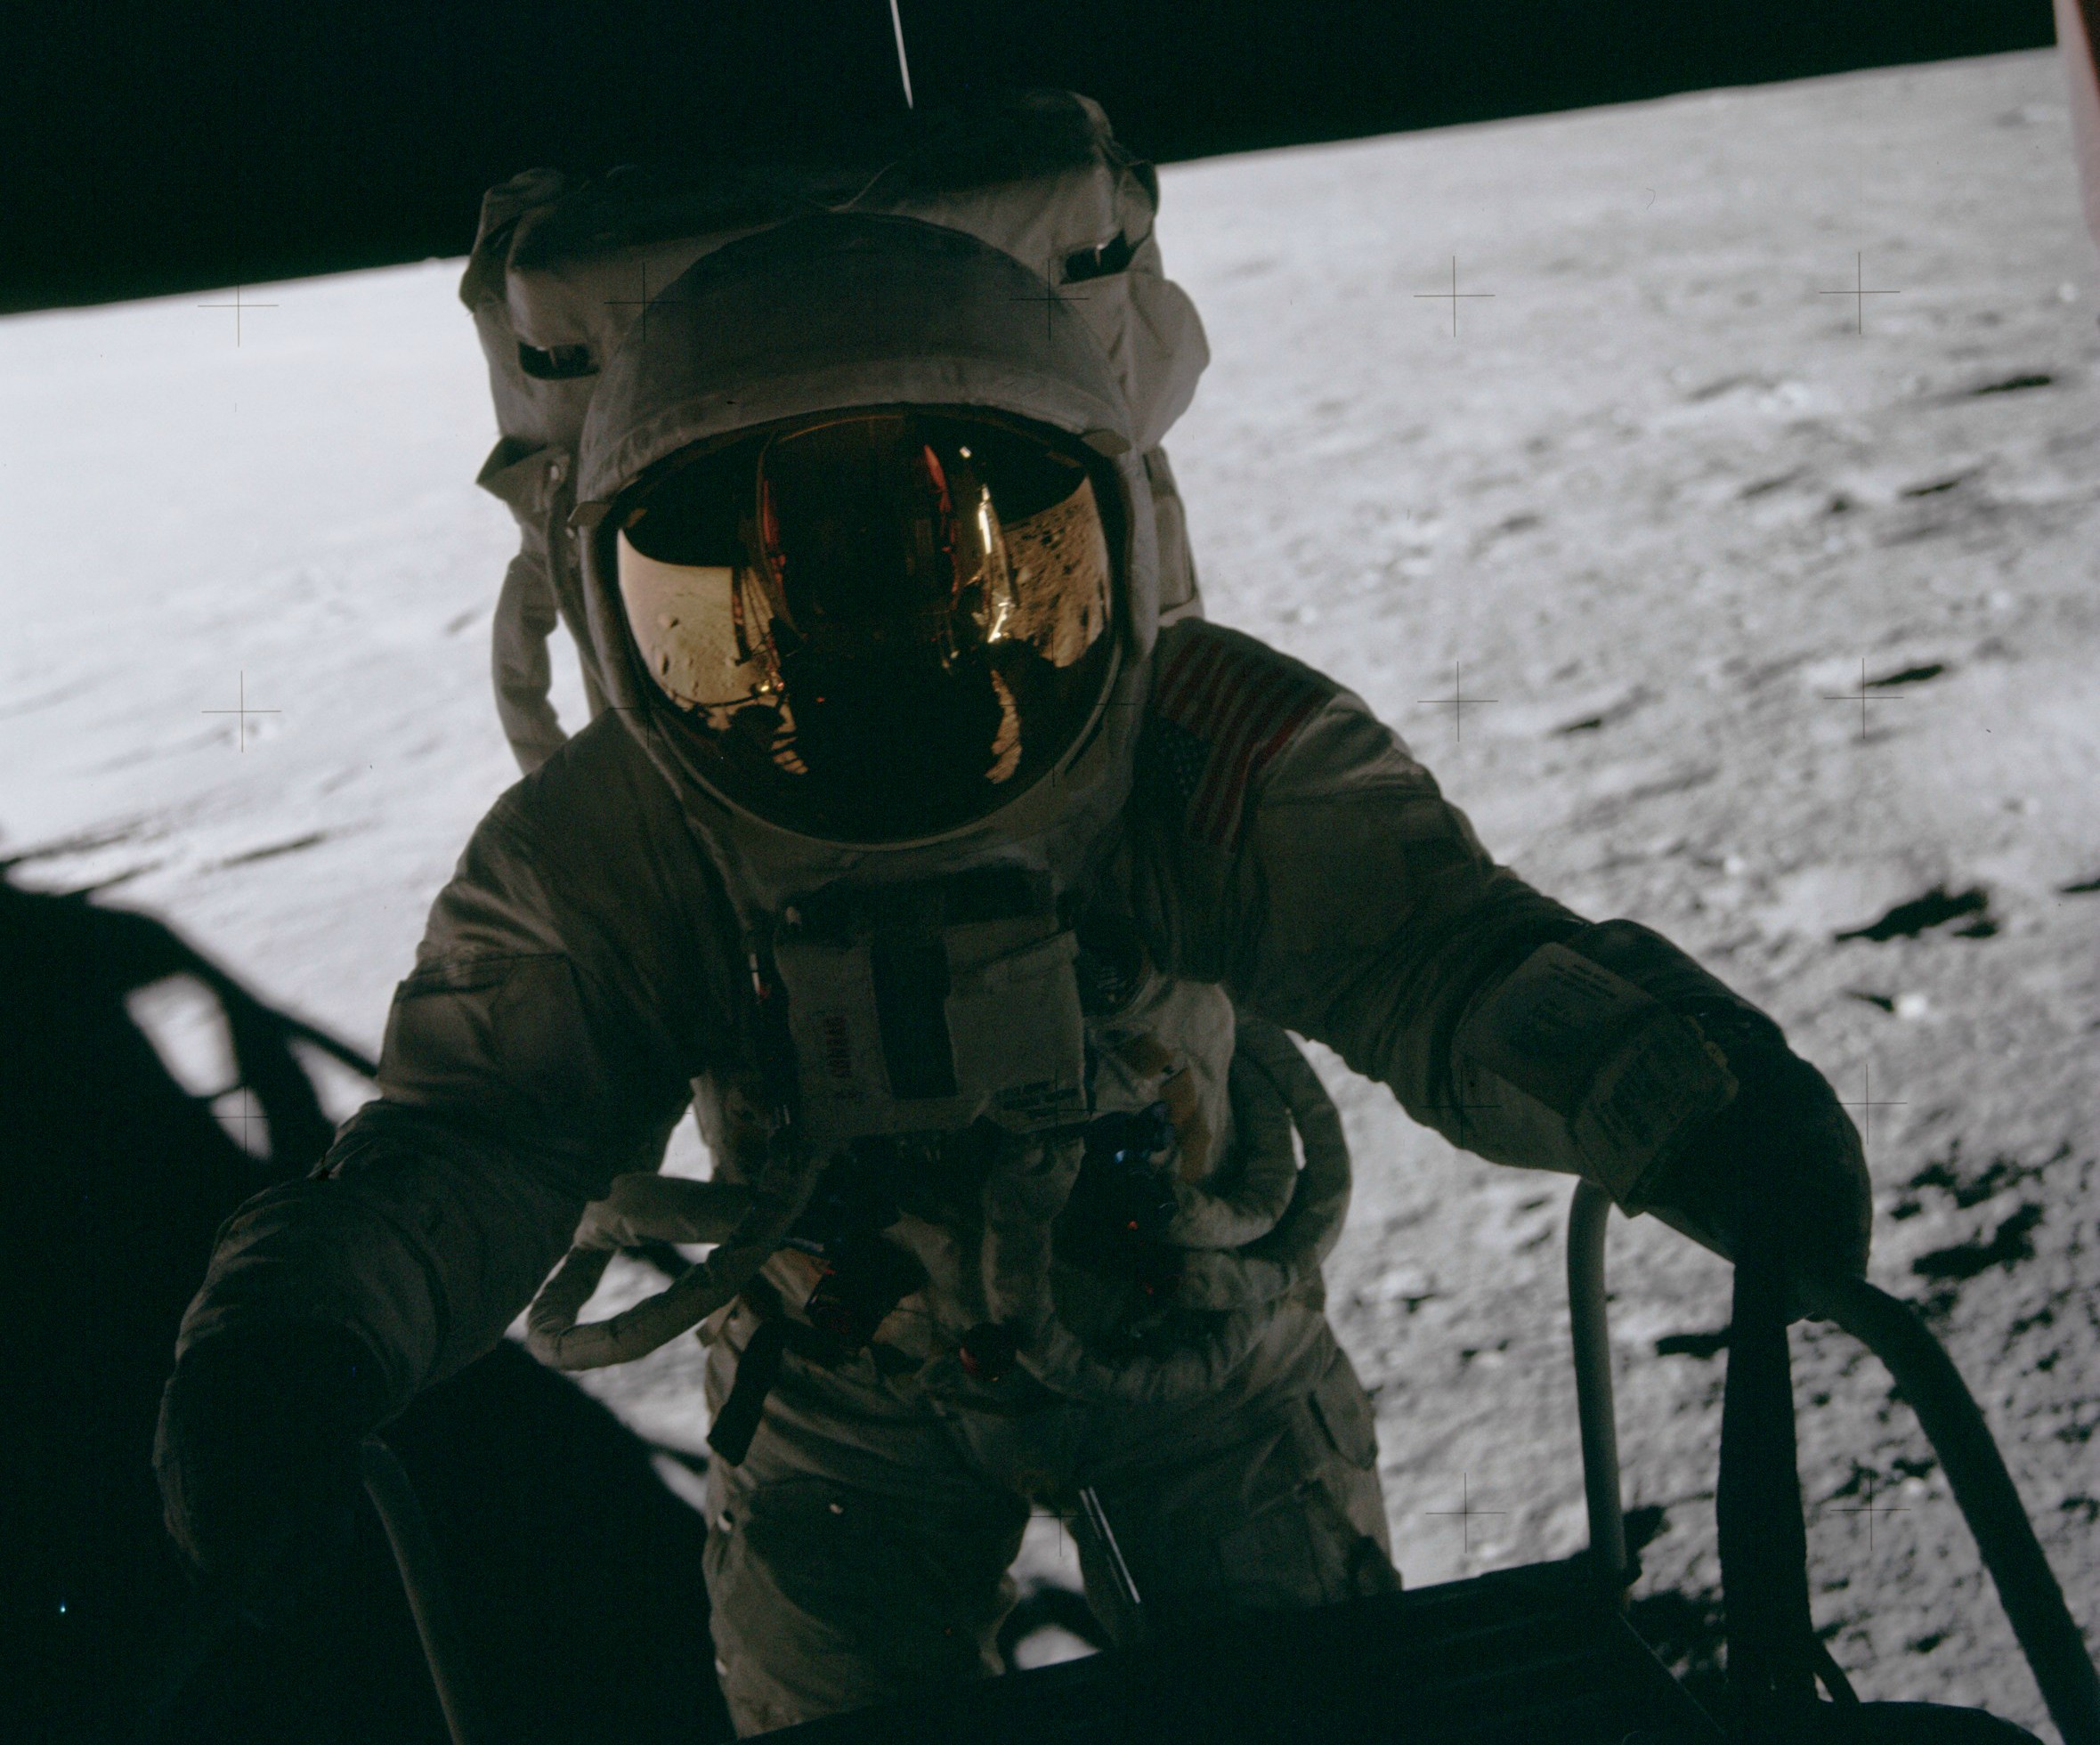 Moon Landings Facts